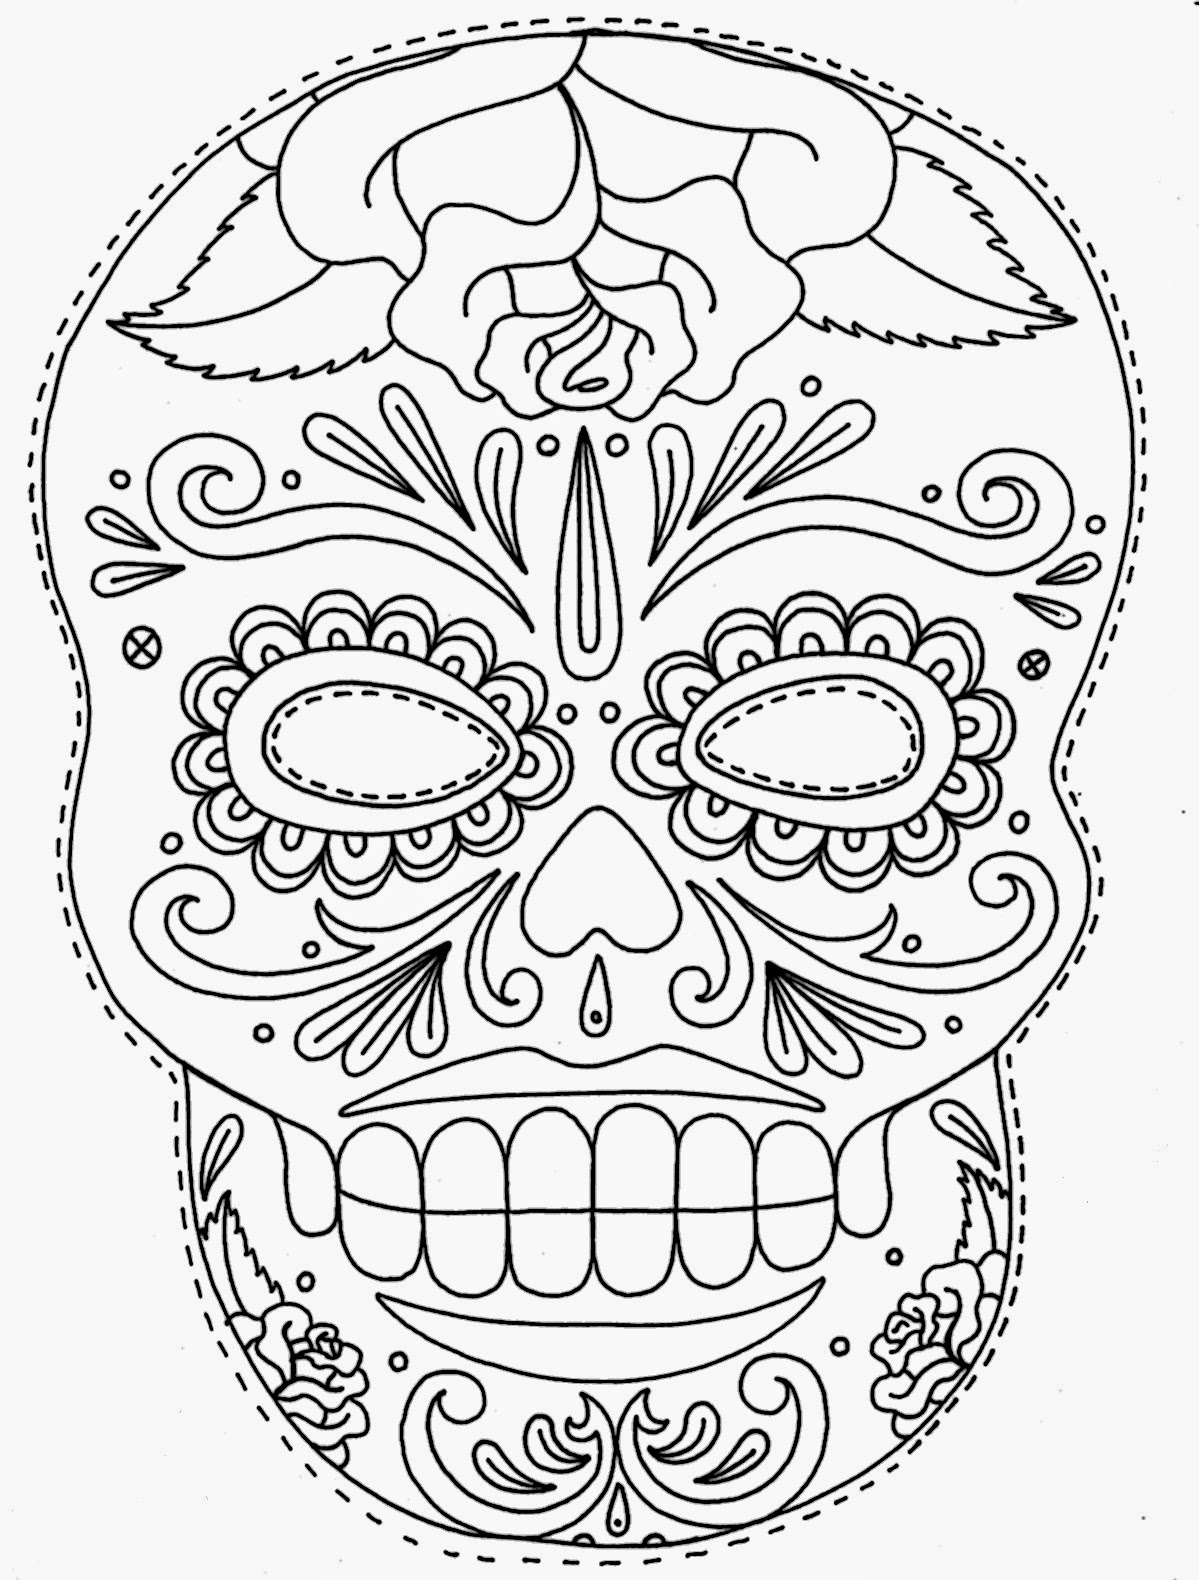 Tattoos Book: +2510 FREE Printable Tattoo Stencils: Skulls